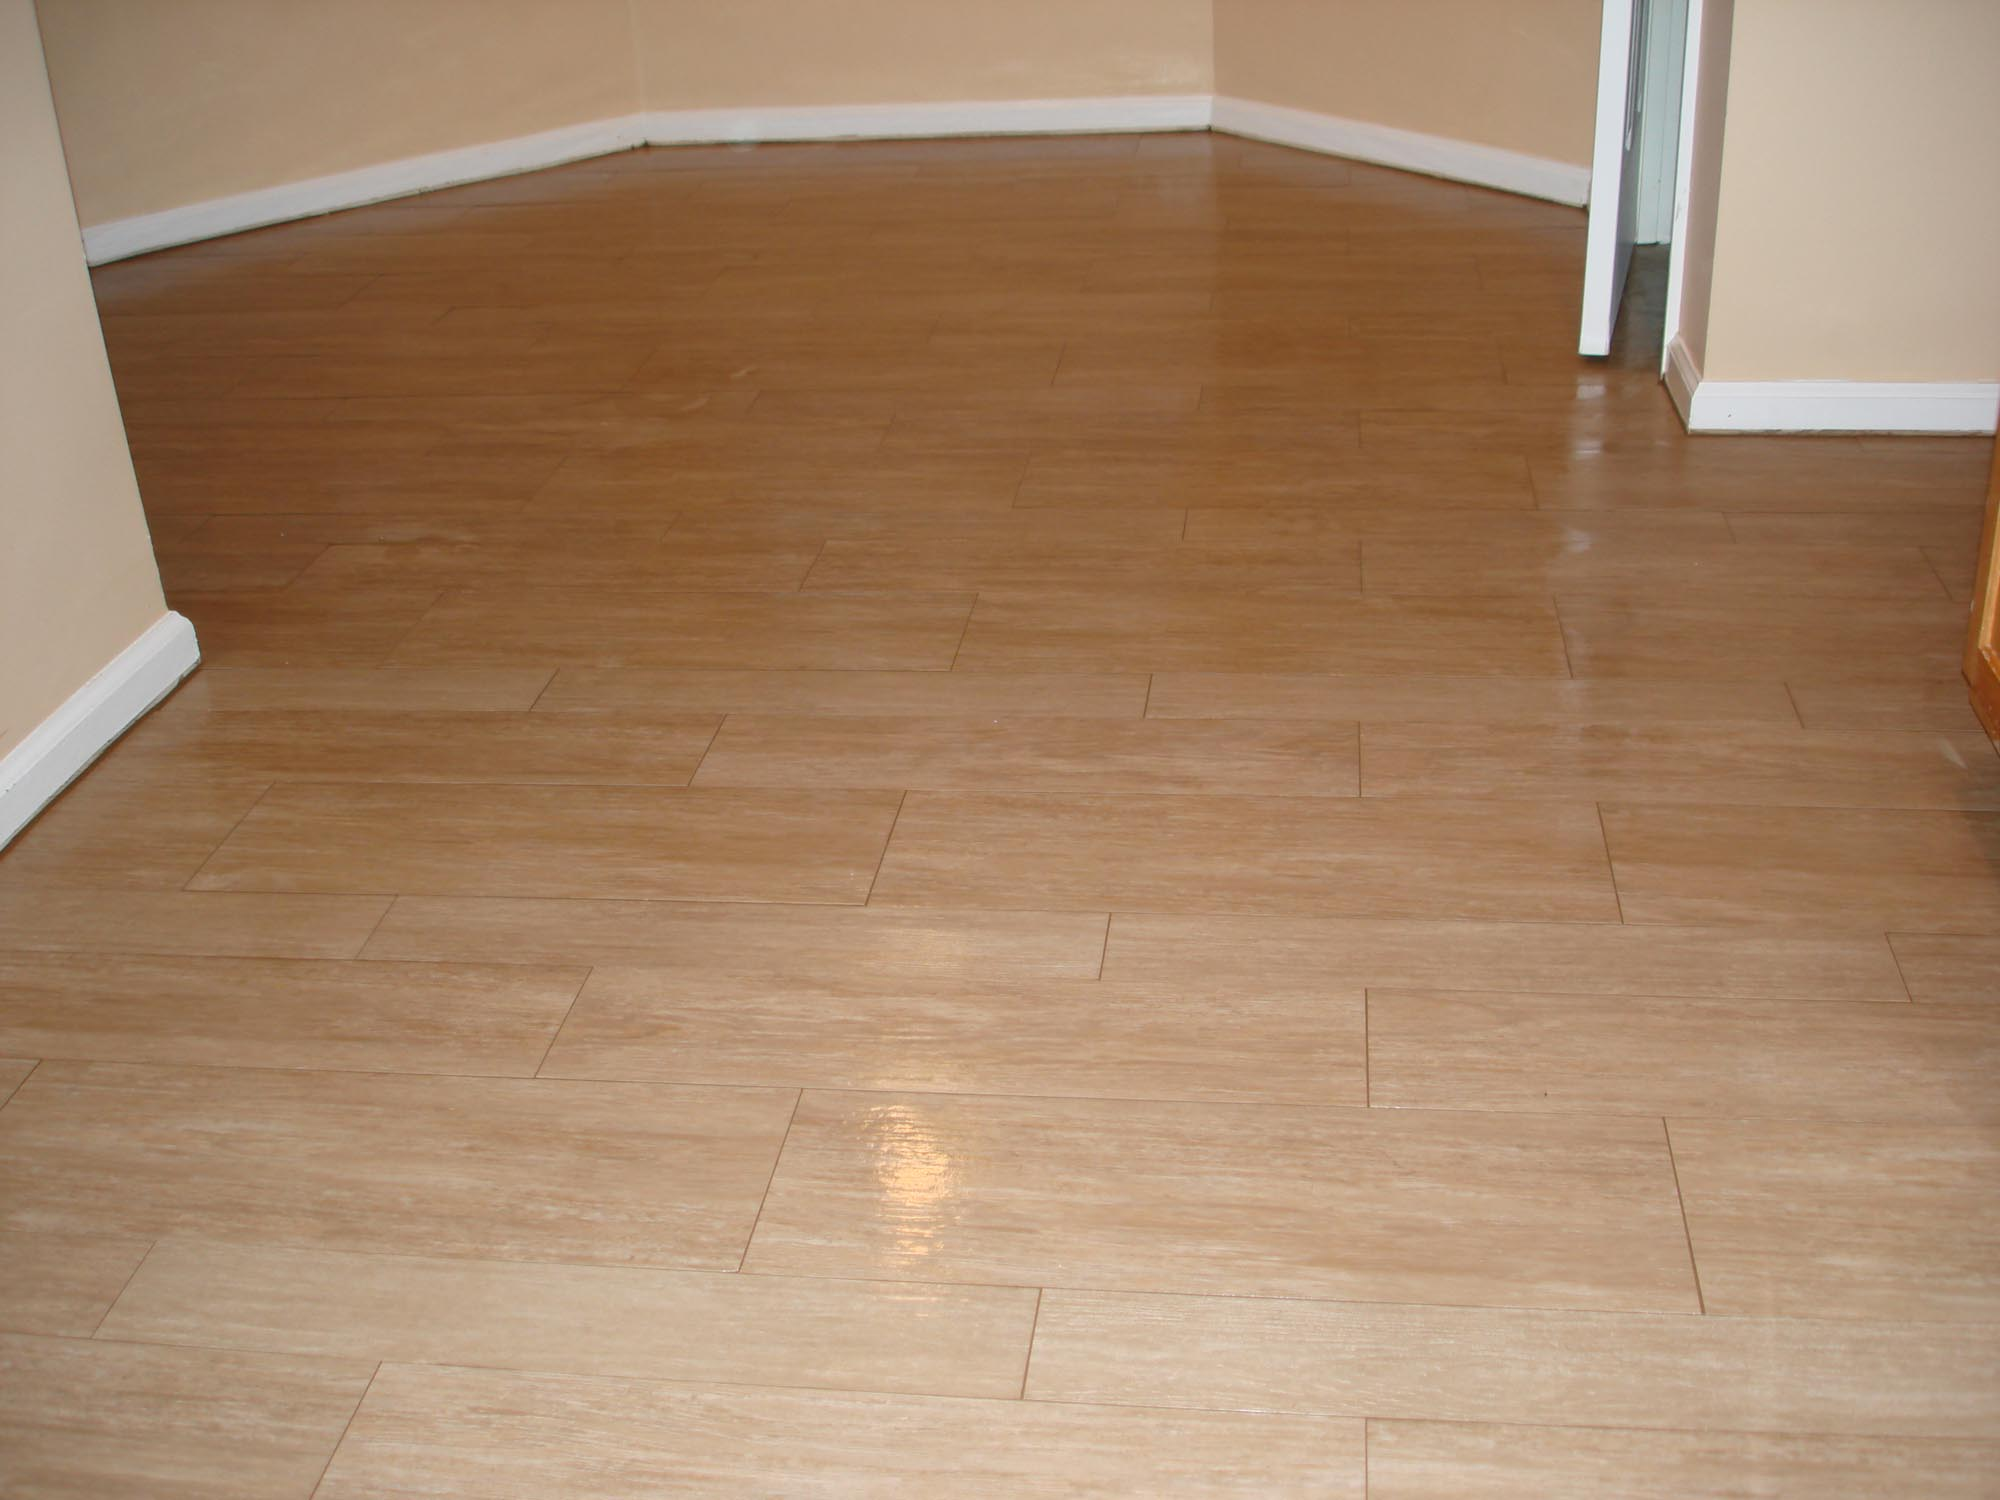 Hardwood tile floor wood tile kitchen floor new jersey custom tile dailygadgetfo Choice Image